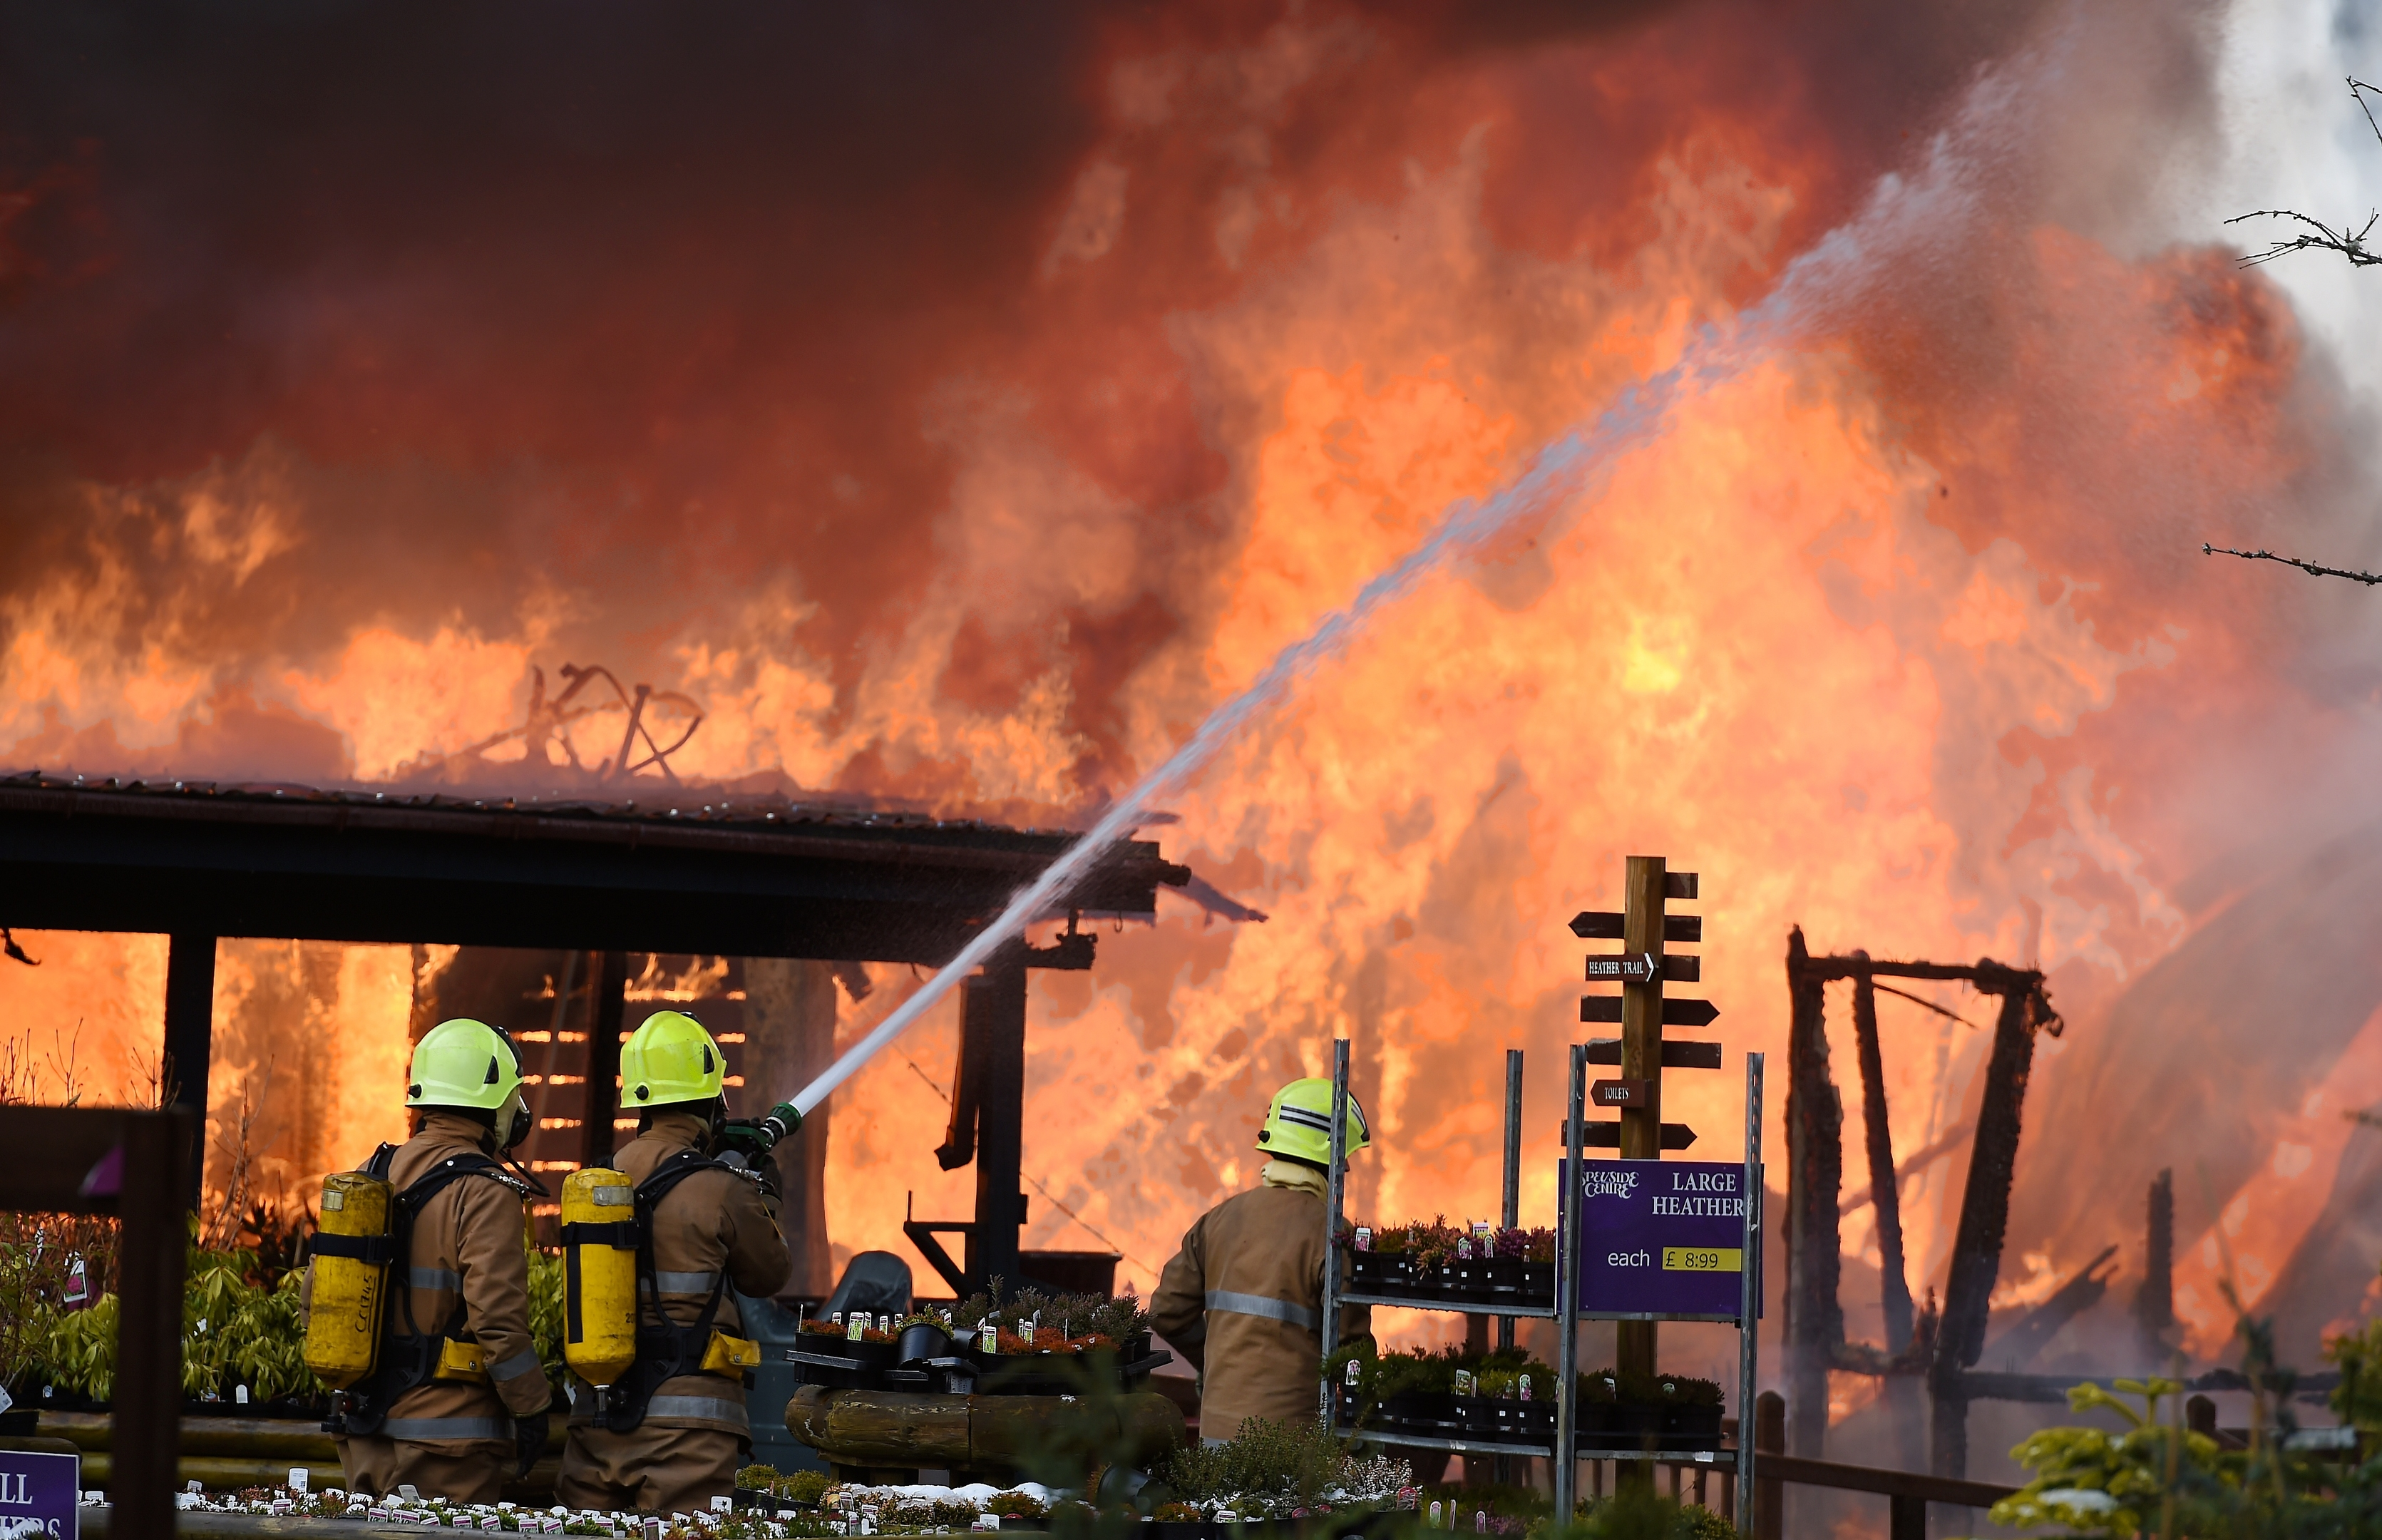 Changes are being made in the wake of centralising fire control in Dundee.